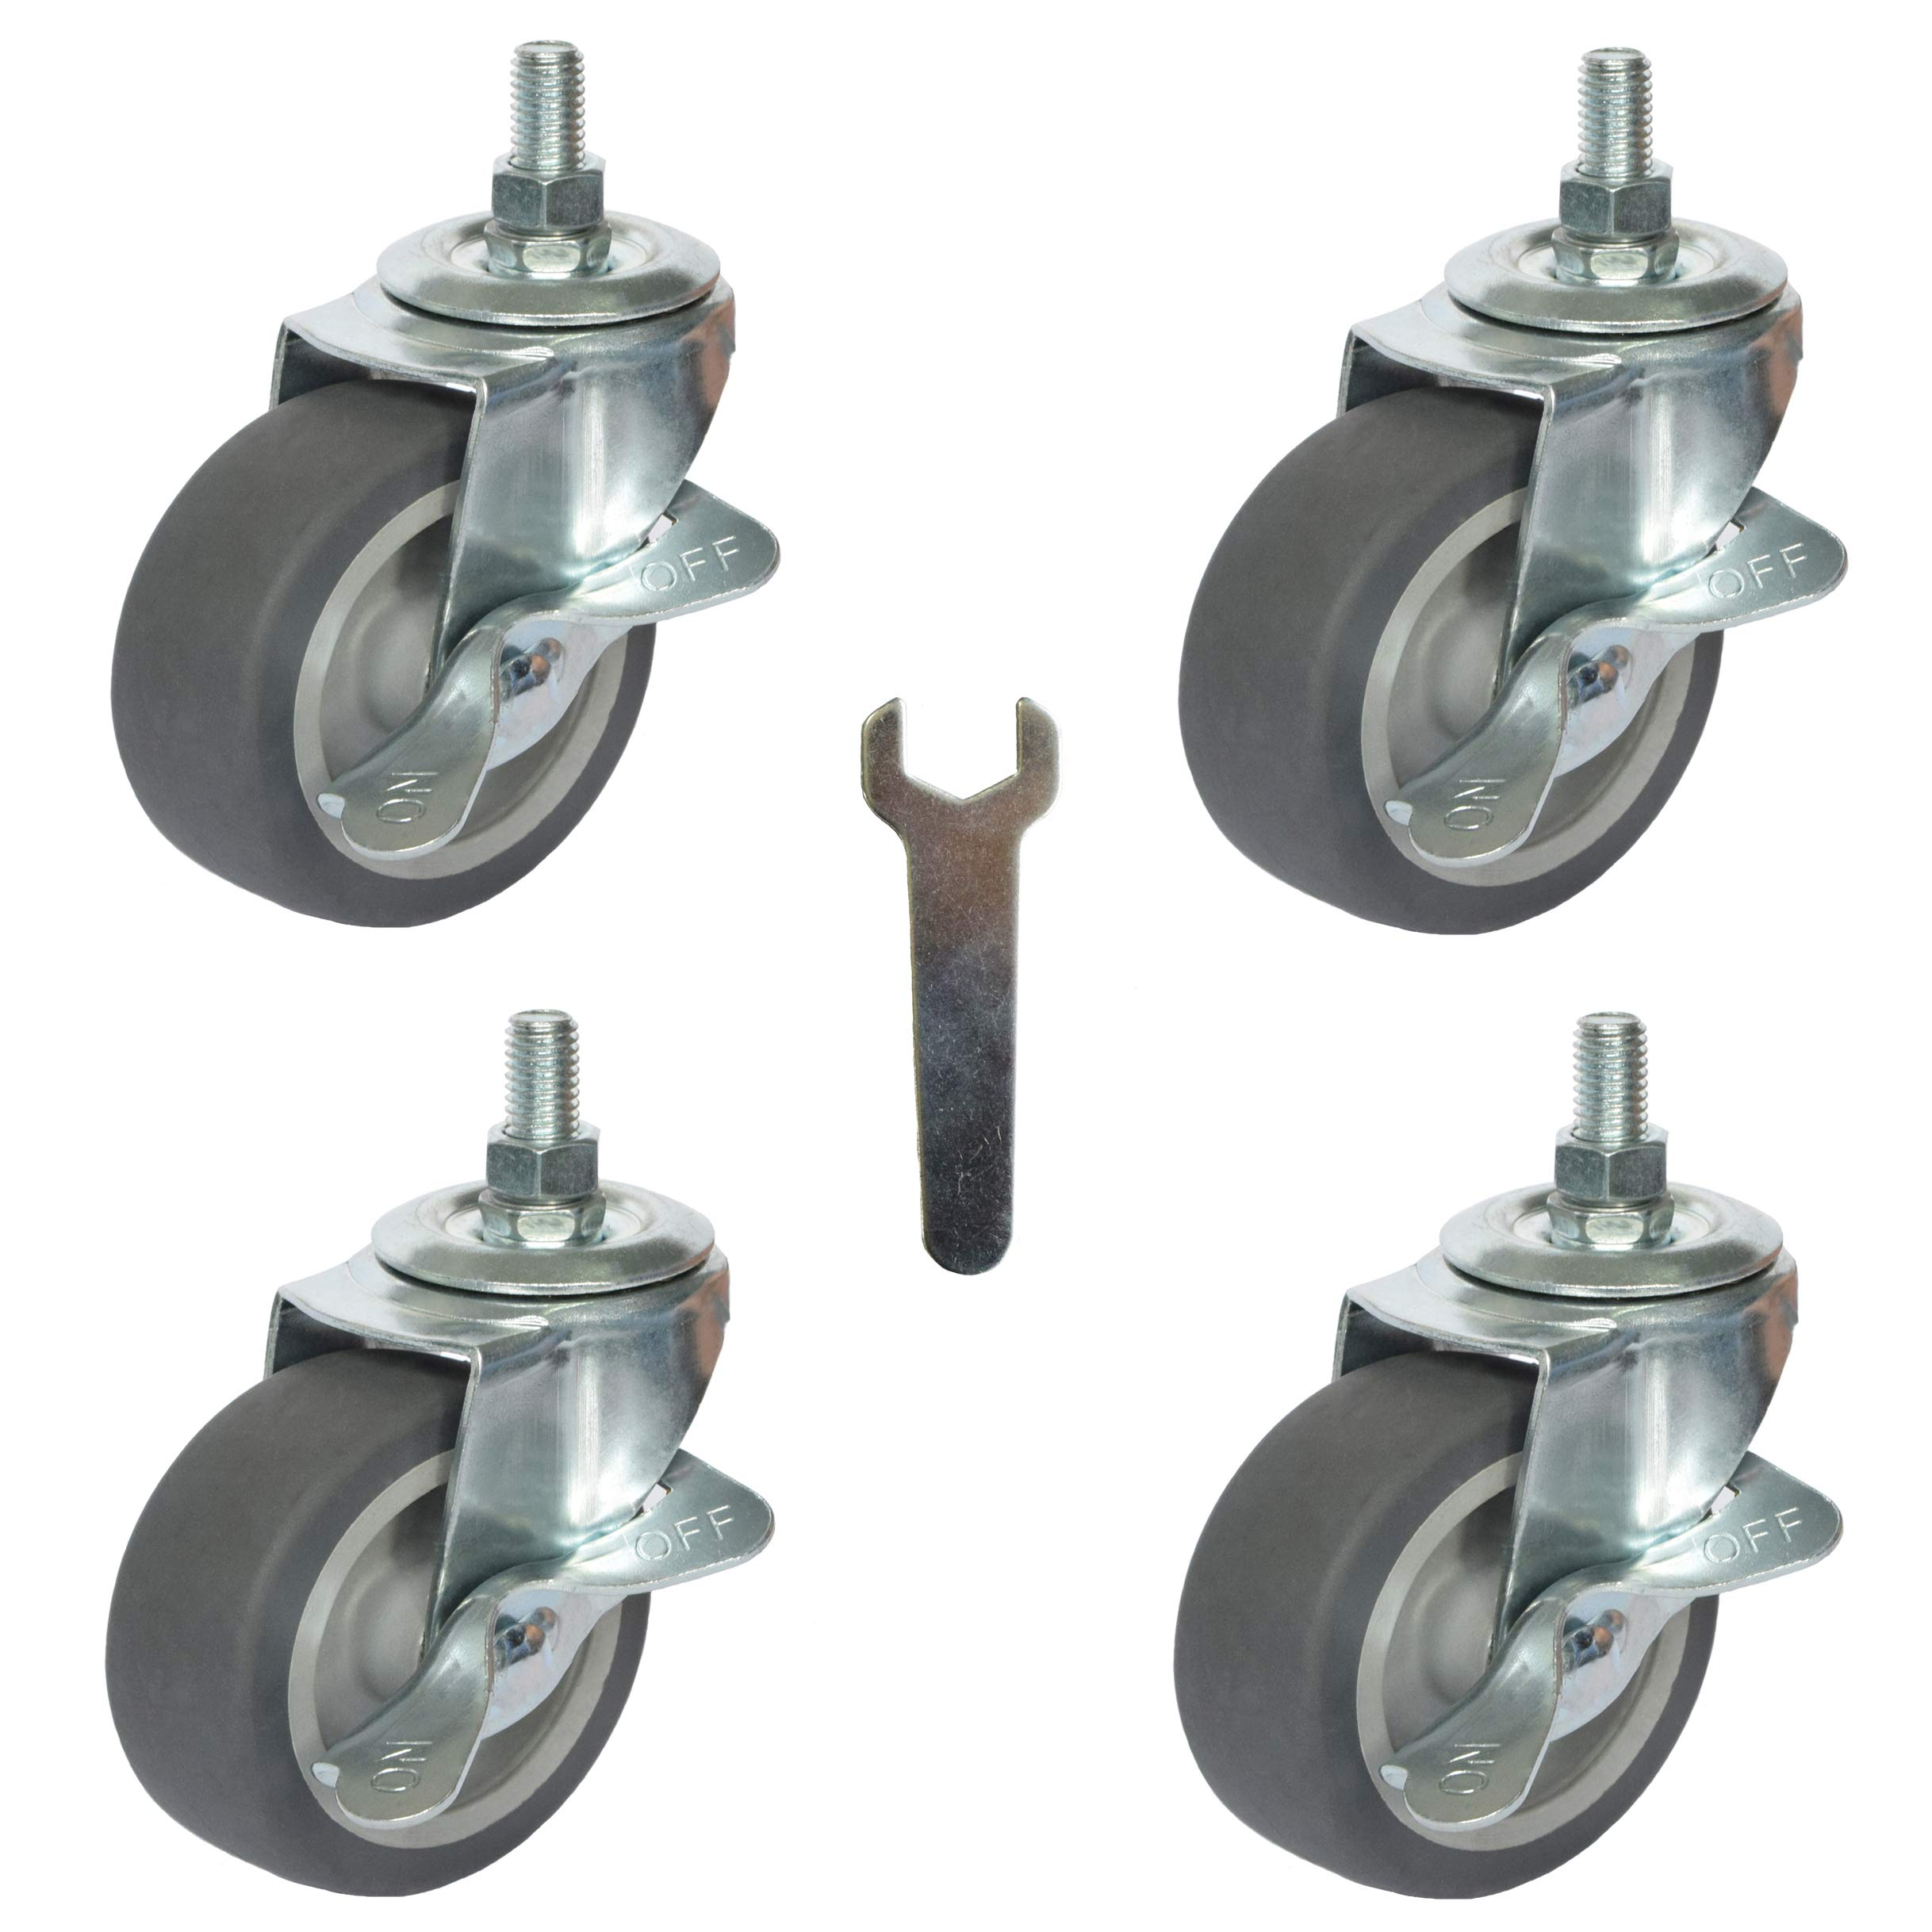 4X Brake Stem Casters 3/8''-16x1''| 3'' Swivel Rubber Stem Caster Wheels with Nuts Lock, Threaded Stem Industrial Castors Replacement for Carts Furniture Dolly Workbench Trolley (CasterBS75_1025EN)